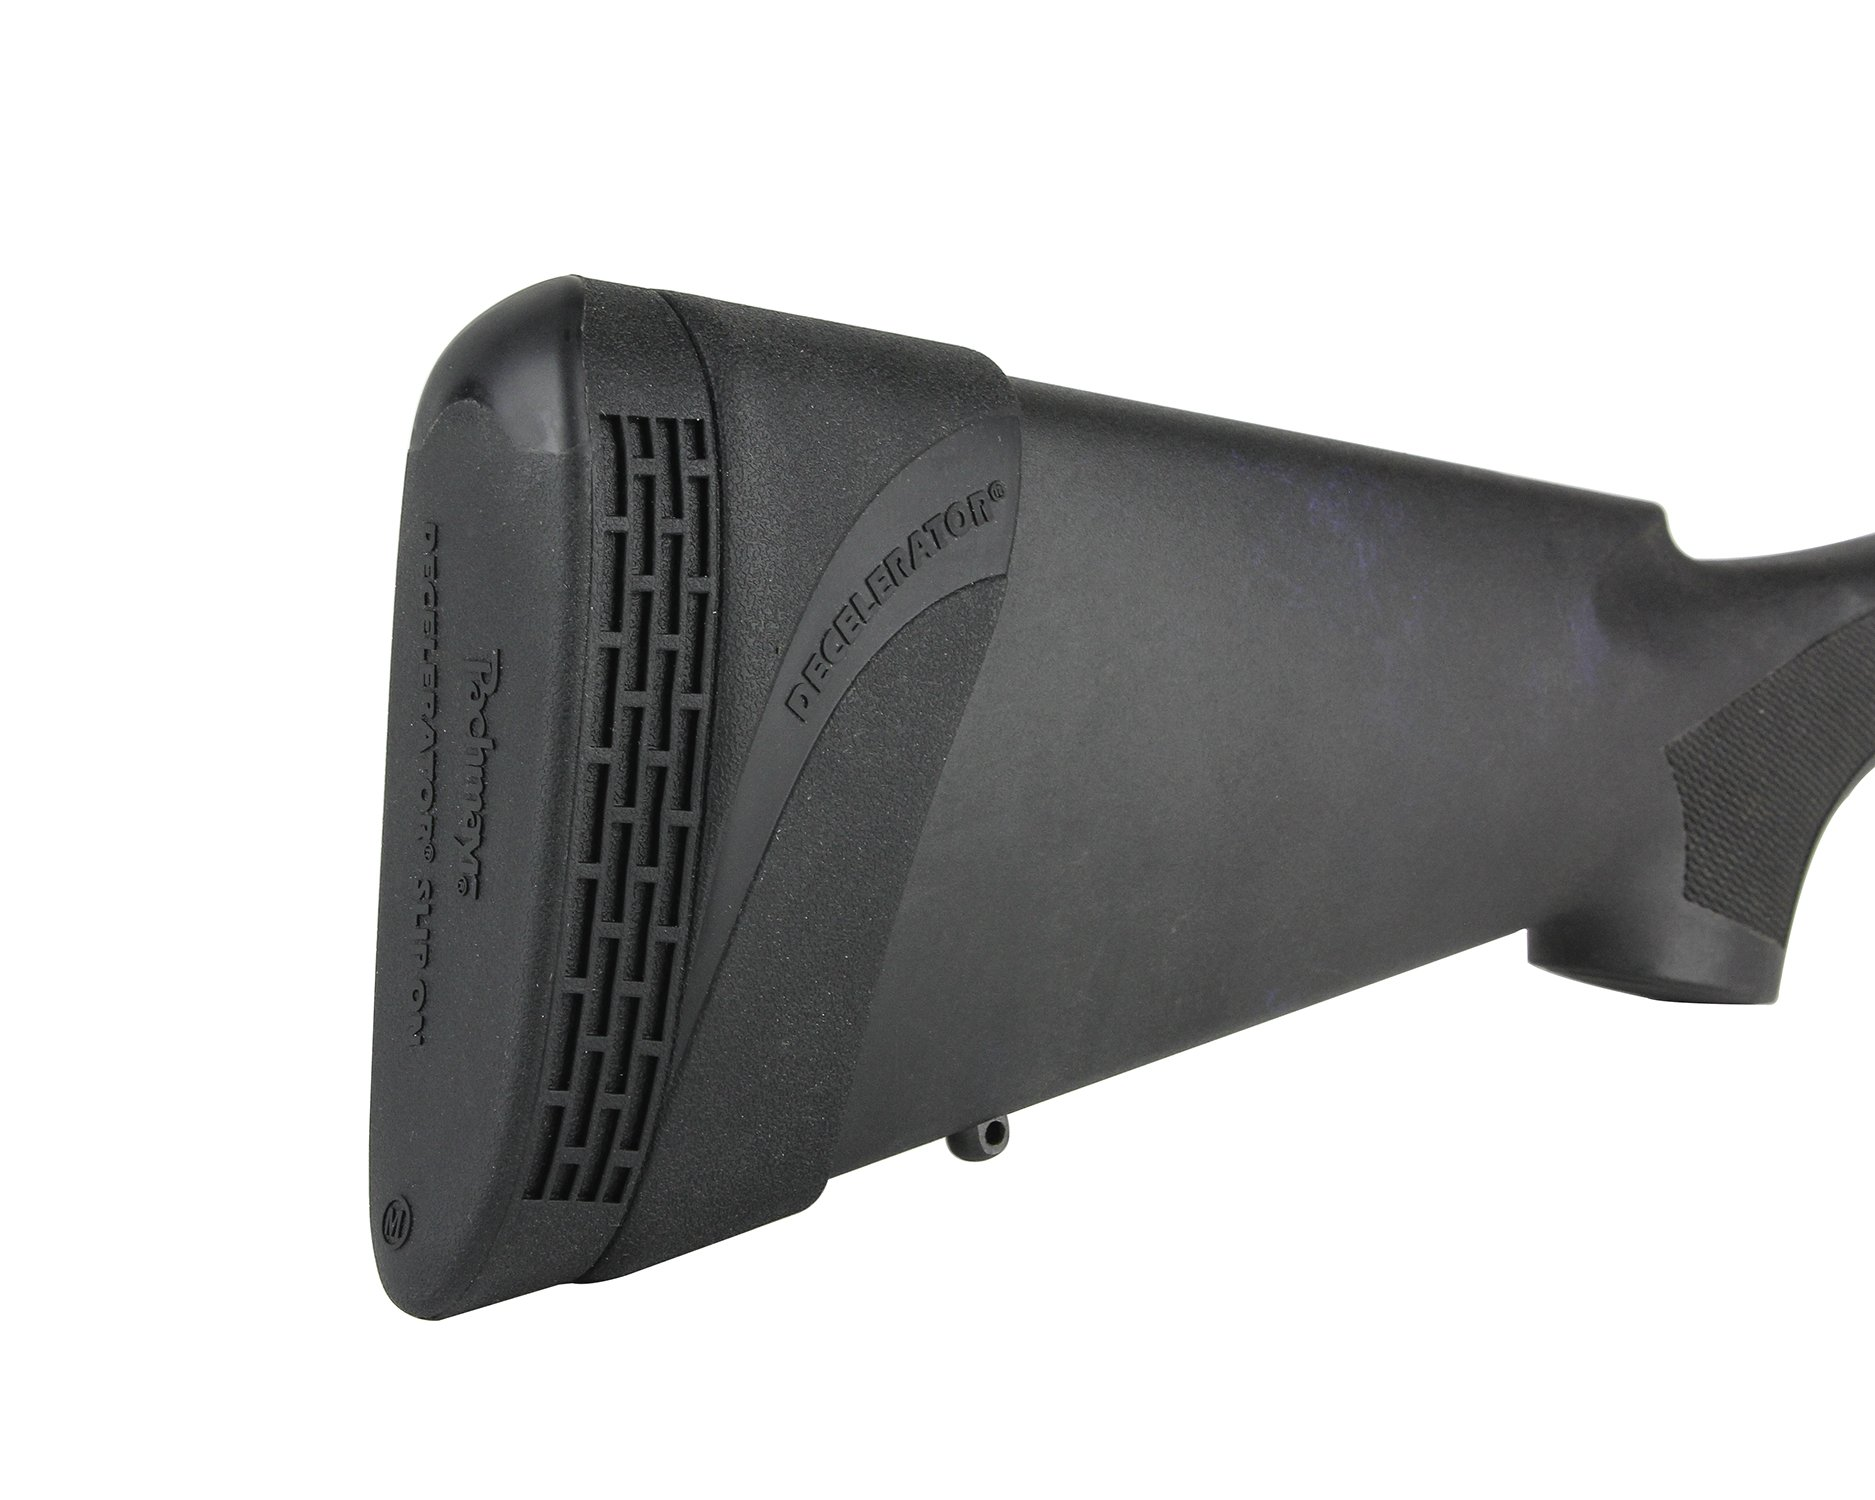 Pachmayr Decelerator Slip-On Recoil Pad